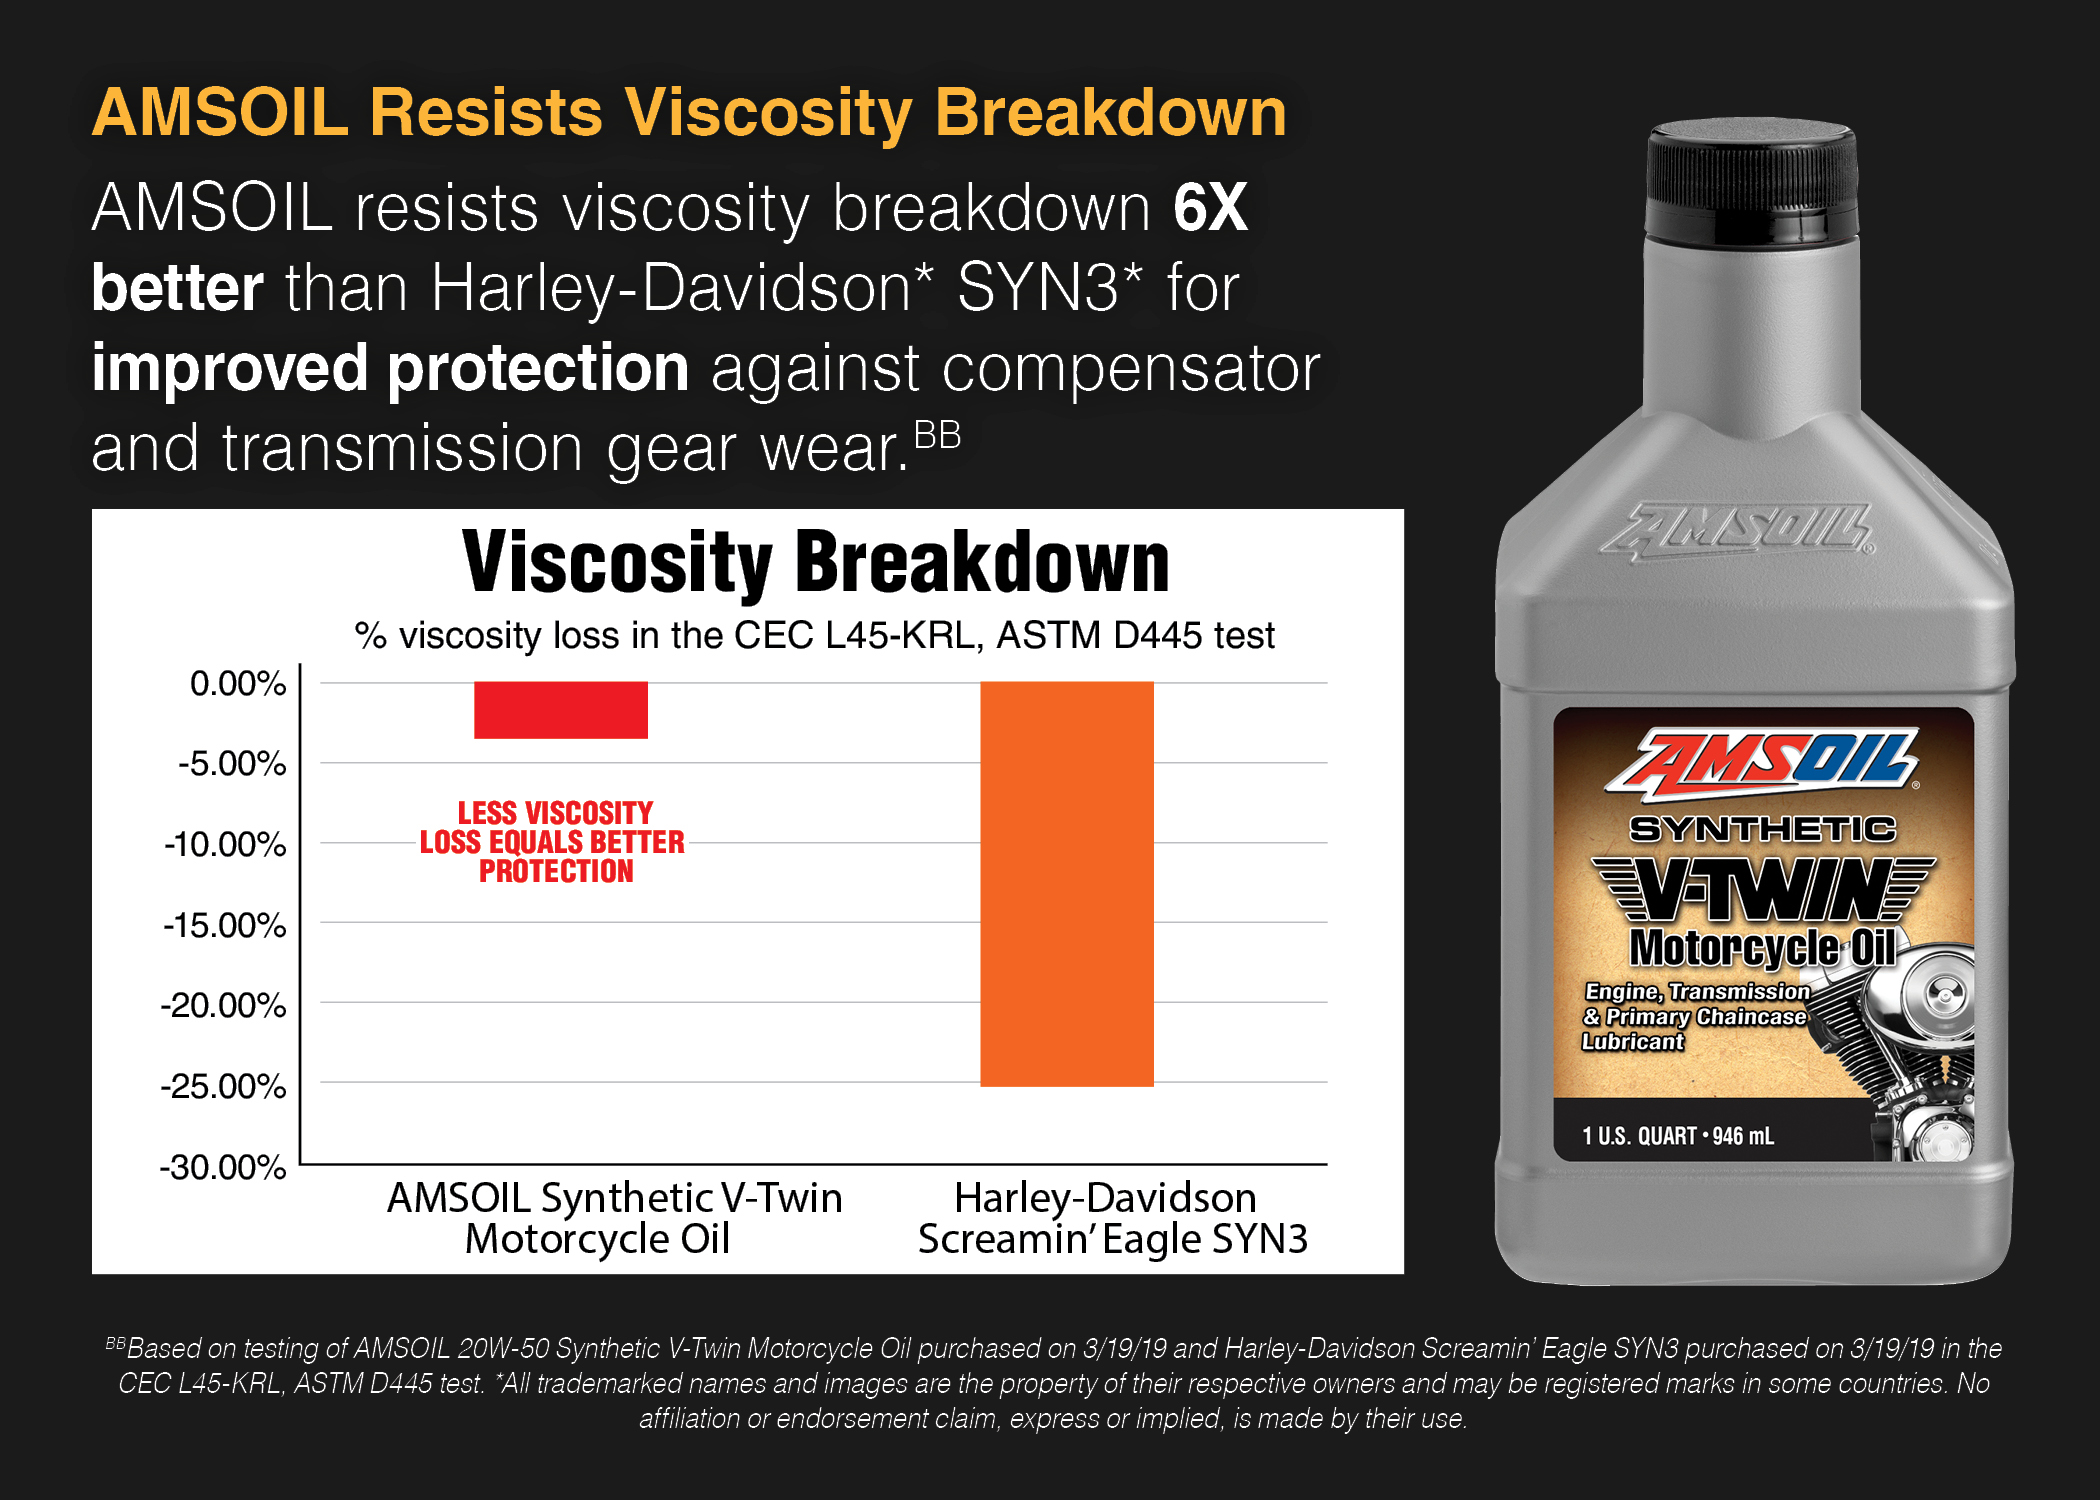 Viscosity Breakdown